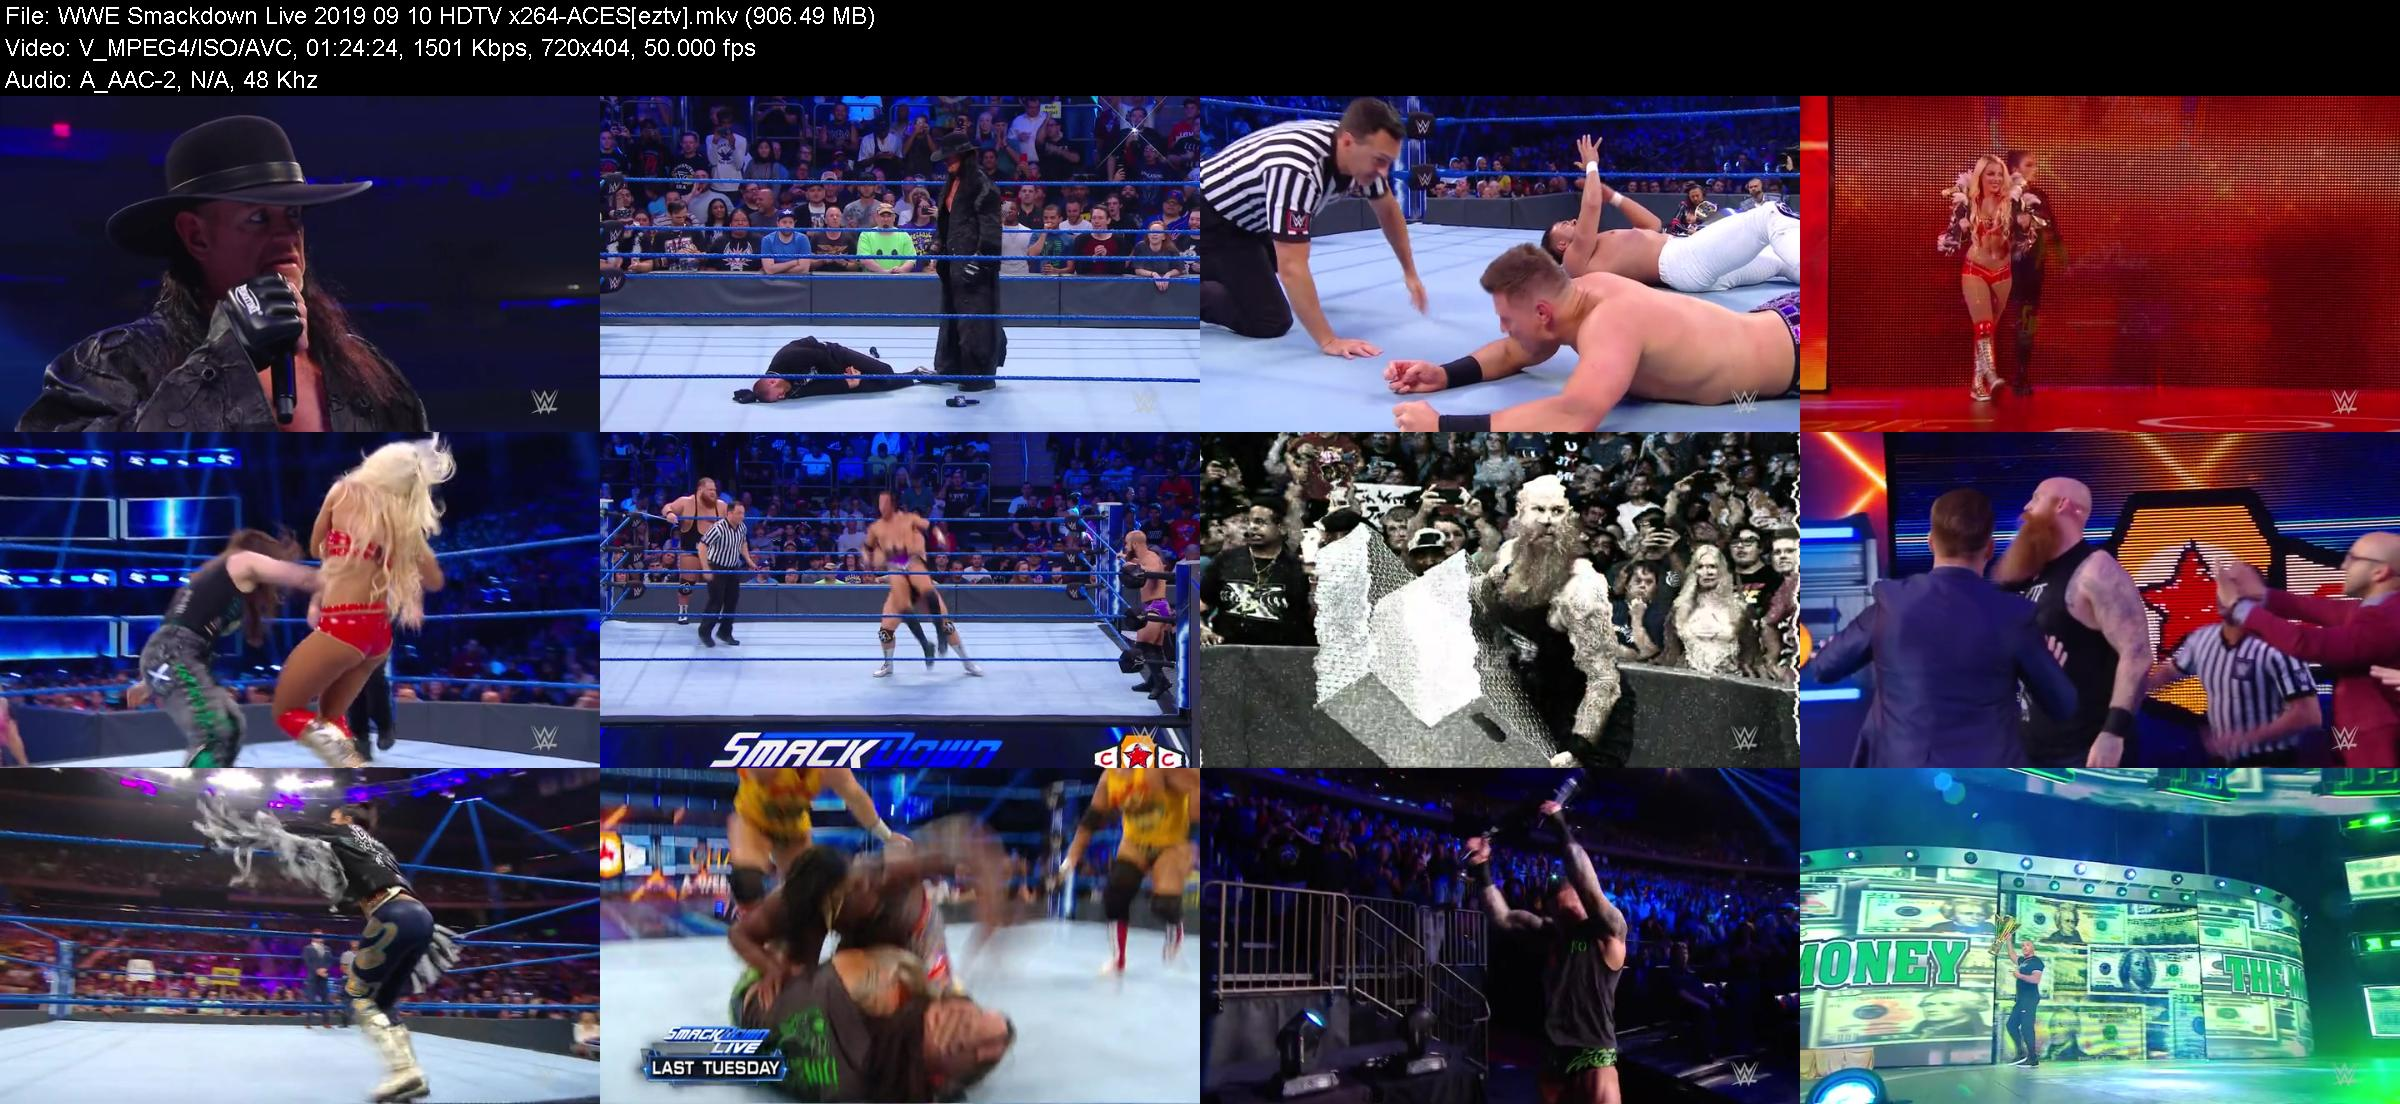 WWE Smackdown Live 2019 09 10 HDTV x264-ACES